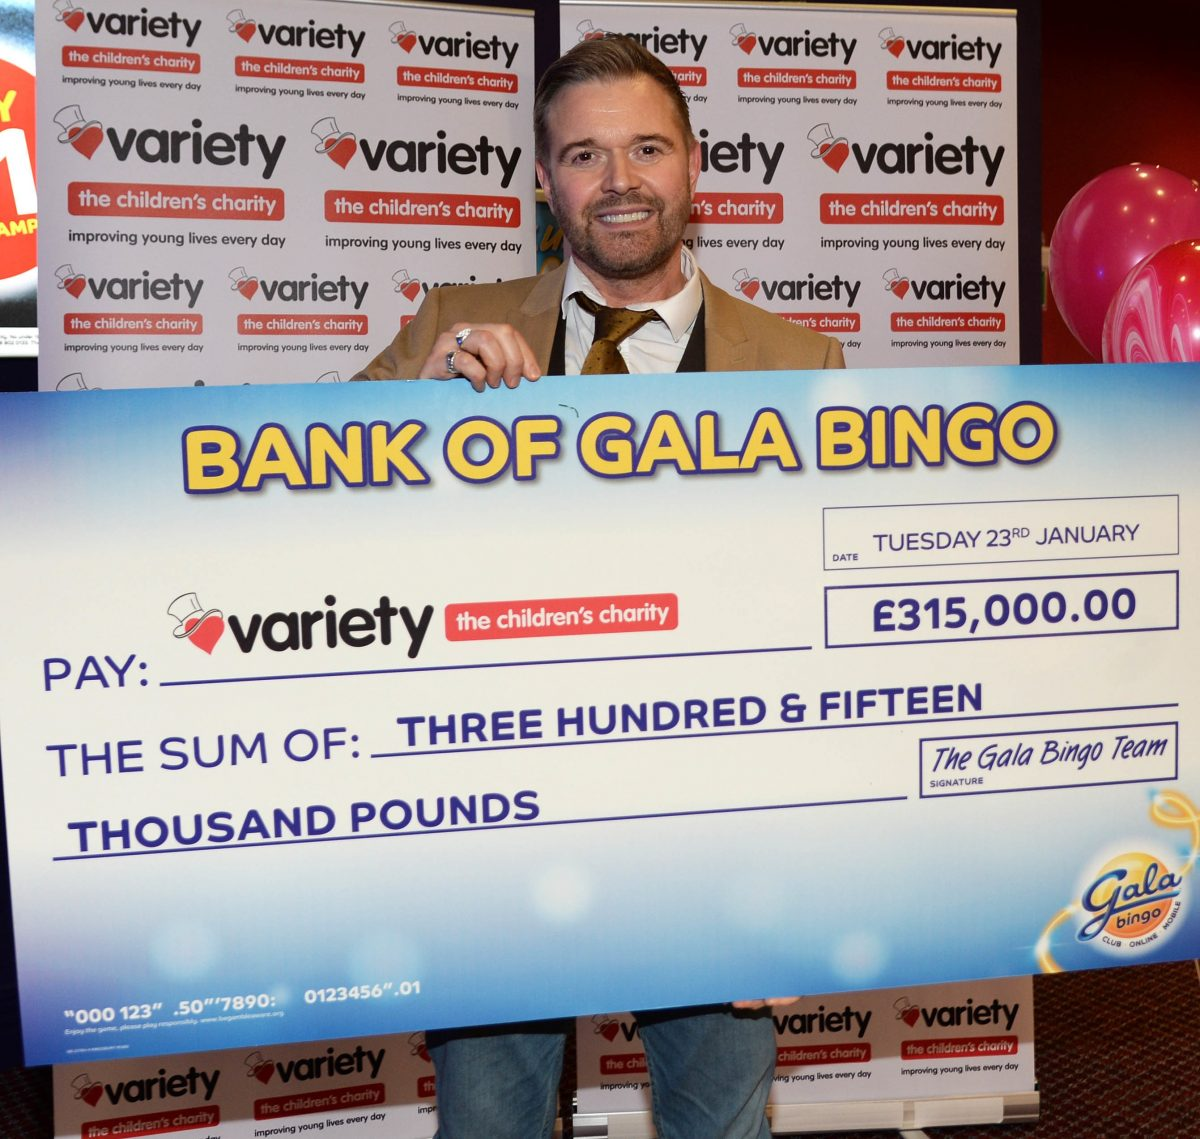 "NEWS RELEASE  Gala Bingo Birmingham presents Variety, the Children's Charity with a cheque for £315,000 along with special guest Darren Day Tues 23rd  January 2018, Birmingham  Gala Bingo has celebrated raising £315,000 since it launched its charity game nearly six months ago for Variety, the Children's Charity, at its Birmingham club today.   Gala Bingo originally aimed to raise £250,000, but due to the generosity of its staff and customers throughout the company, they exceeded this total by over £50,000. With two months left to play Gala Bingo's charity game, the estimated final total is likely to be nearer £400,000.  These fundraising efforts are part of the pledge made by The Bingo Association to raise a staggering £1 million for Variety by the end of 2018.   The money raised by the new game will be used to sponsor Variety's Sunshine Coaches, fund a number of grants for specialist, sensory and medical equipment and powered and sports wheelchairs. The funds will also go towards providing a number of memorable days and outings for disabled and disadvantaged children across the UK. The cheque was presented to Variety by television and West End theatre actor, Darren Day.   Colleen Ettridge, Head of Fundraising at Variety, the Children's Charity said:  ""We have been overwhelmed by the generosity of Gala Bingo and its customers. Since 1962, Variety has donated nearly 5,500 Sunshine Coaches to schools across the UK so we can give disabled and disadvantaged children and young people improved opportunities to get the most out of life. This donation will go a long way in helping us provide essential equipment for disabled and disadvantaged children across the UK."" Darren Day, Television and West End Theatre Actor said: ""I'm delighted to be here in Birmingham  celebrating the wonderful achievement of Gala Bingo. I know that the donation of this fantastic sum of money will make a tangible difference to children across the UK."" Simon Shaw, Chief Ret"